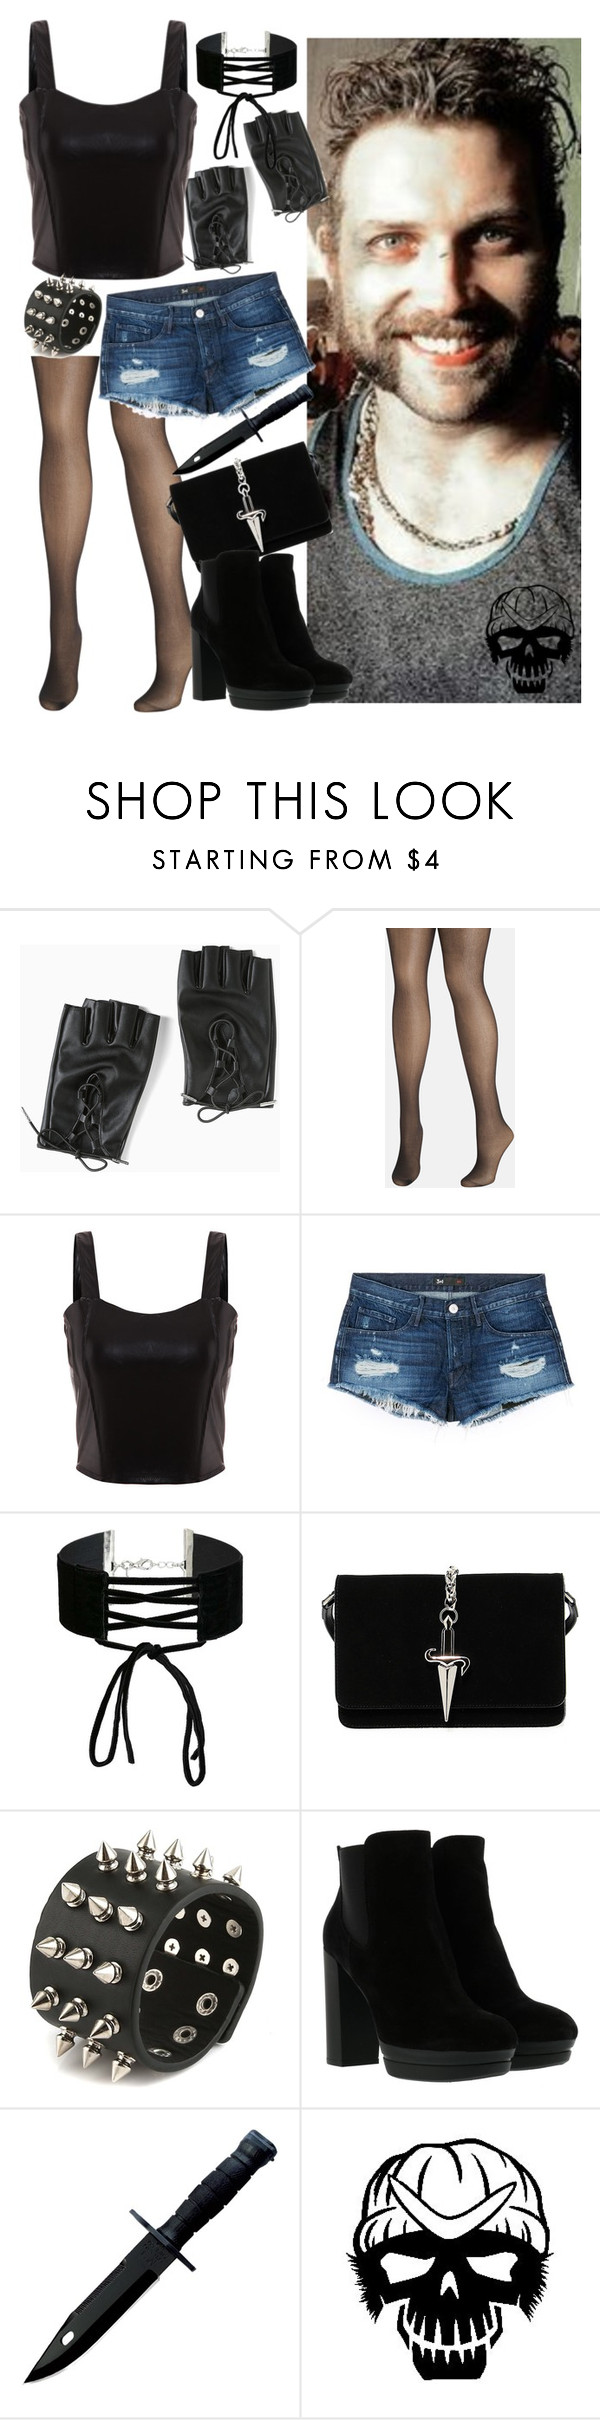 """How you met - Captain Boomerang"" by hitshannahbananah ❤ liked on Polyvore featuring Torrid, Avenue, 3x1, Miss Selfridge, Cesare Paciotti and Hogan"